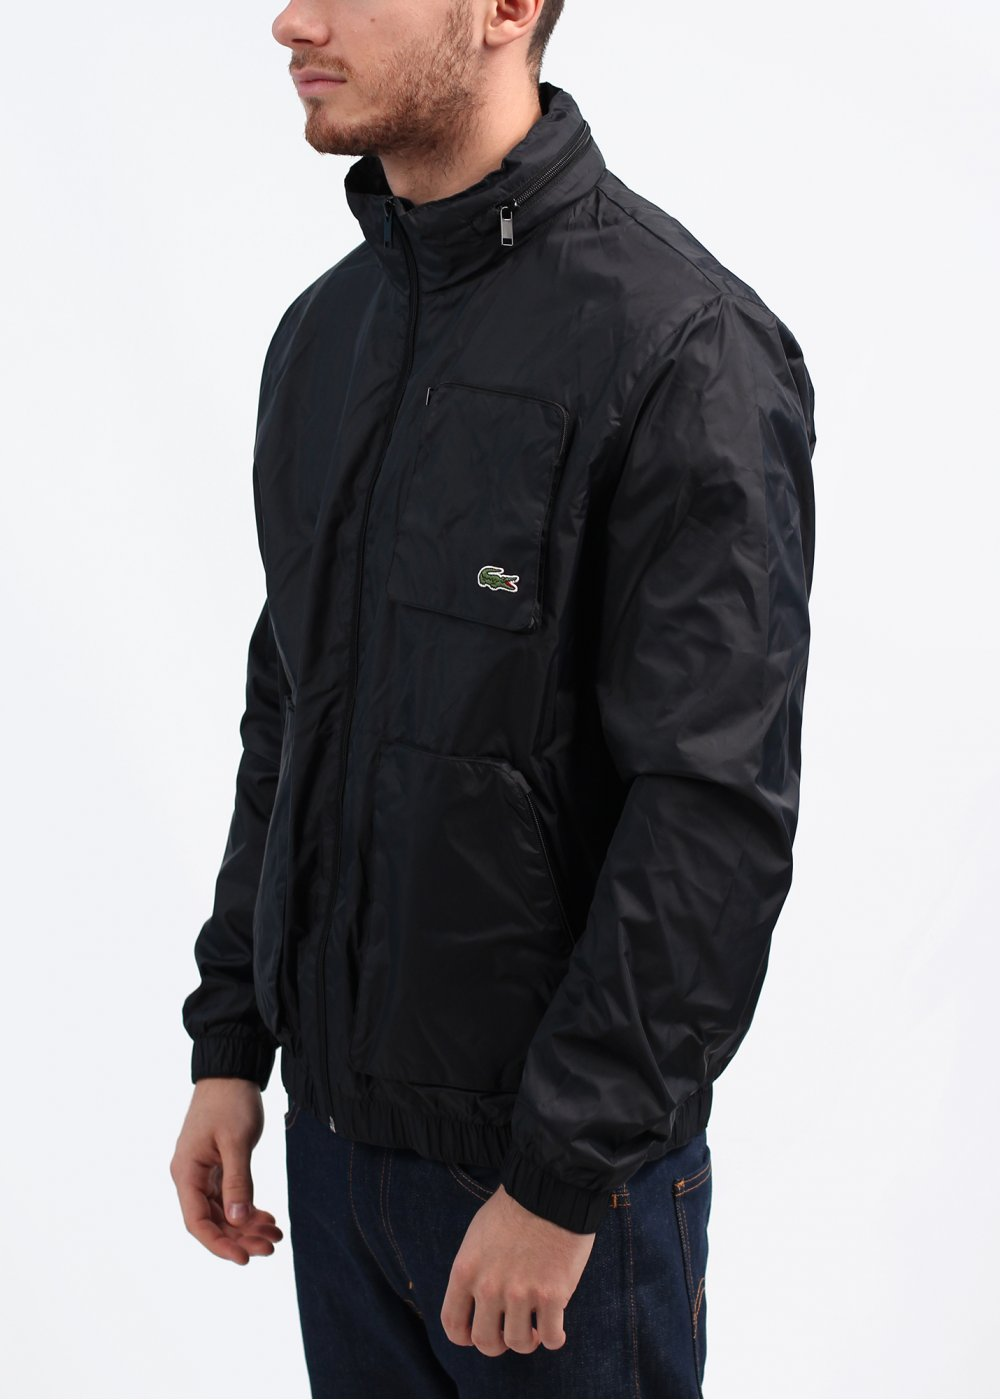 Lacoste Hooded Jacket Black